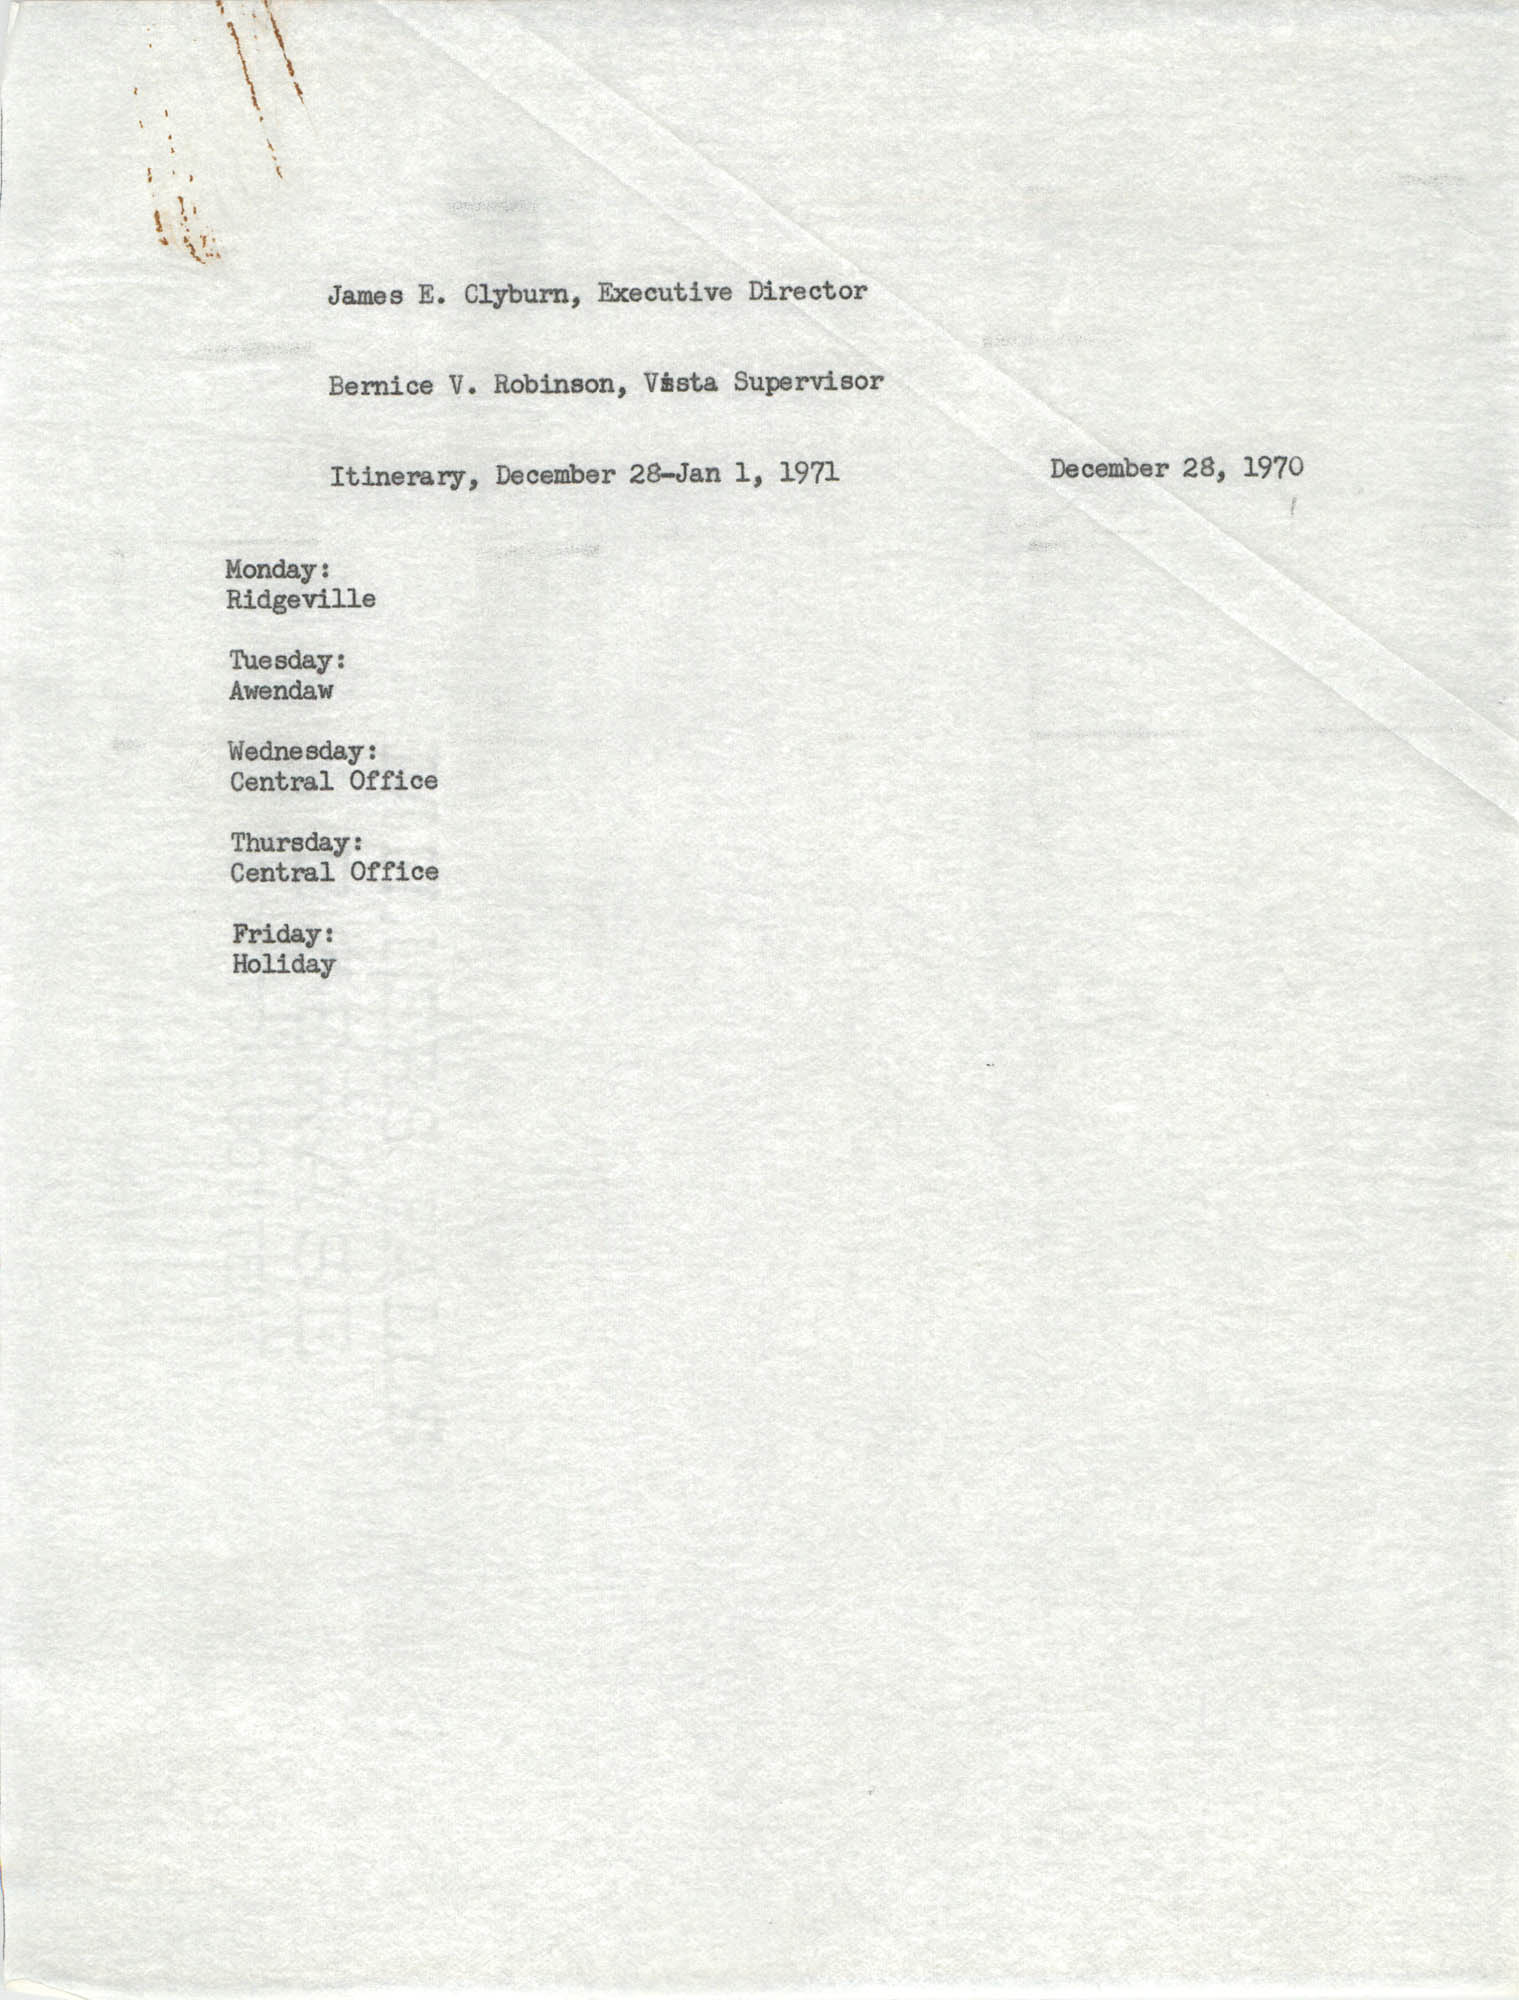 VISTA Itinerary, December 28-January 1, 1971